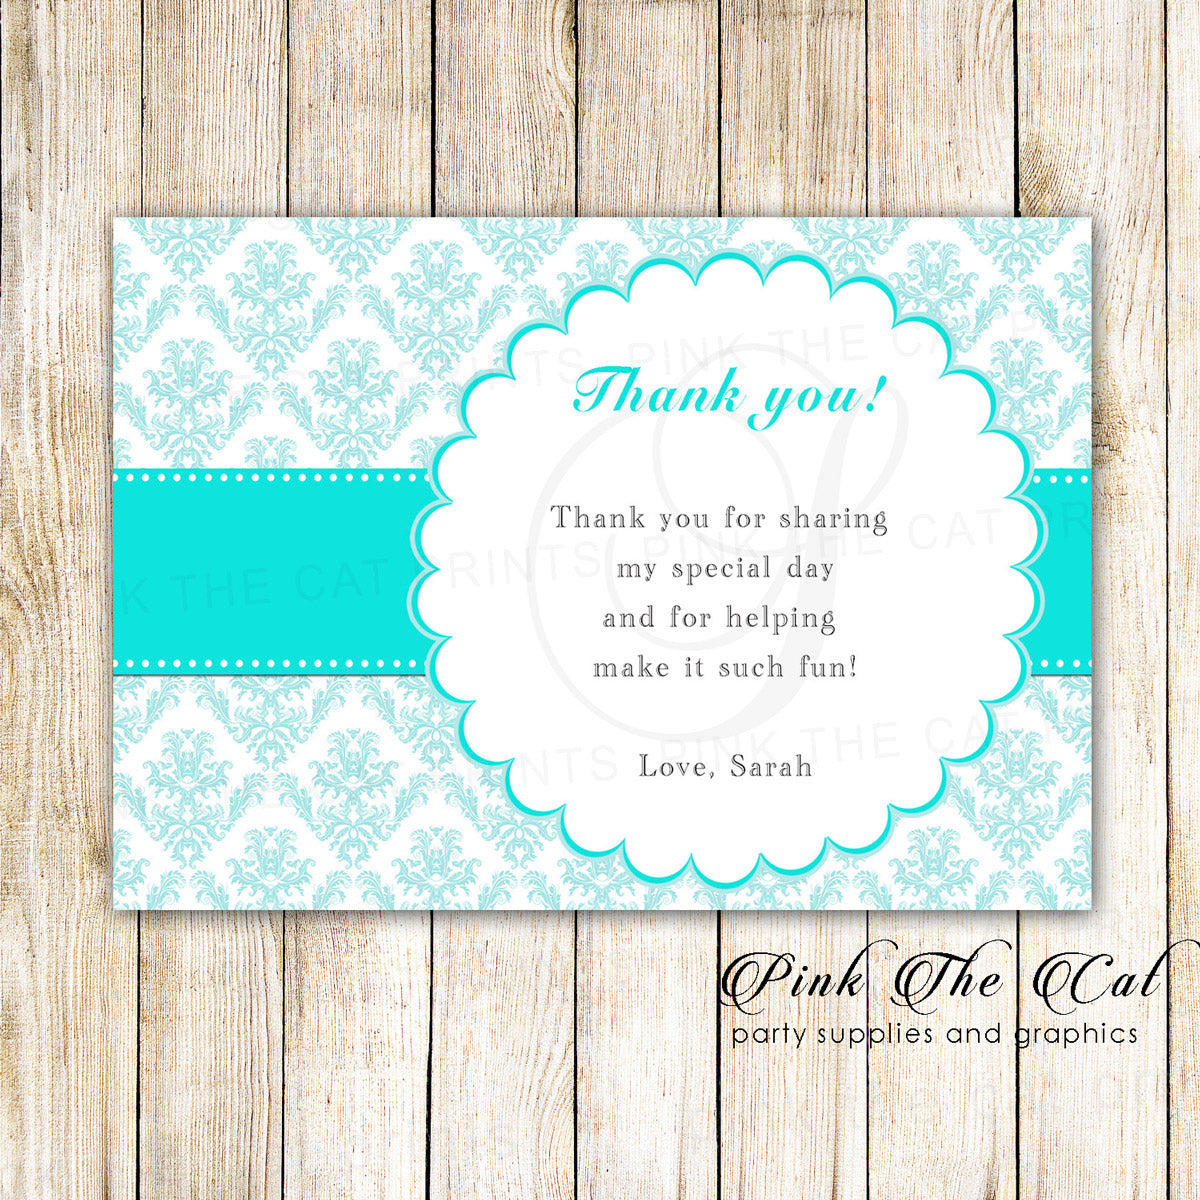 30 Thank You Cards Teal Damask Birthday Bridal Shower – Pink The Cat